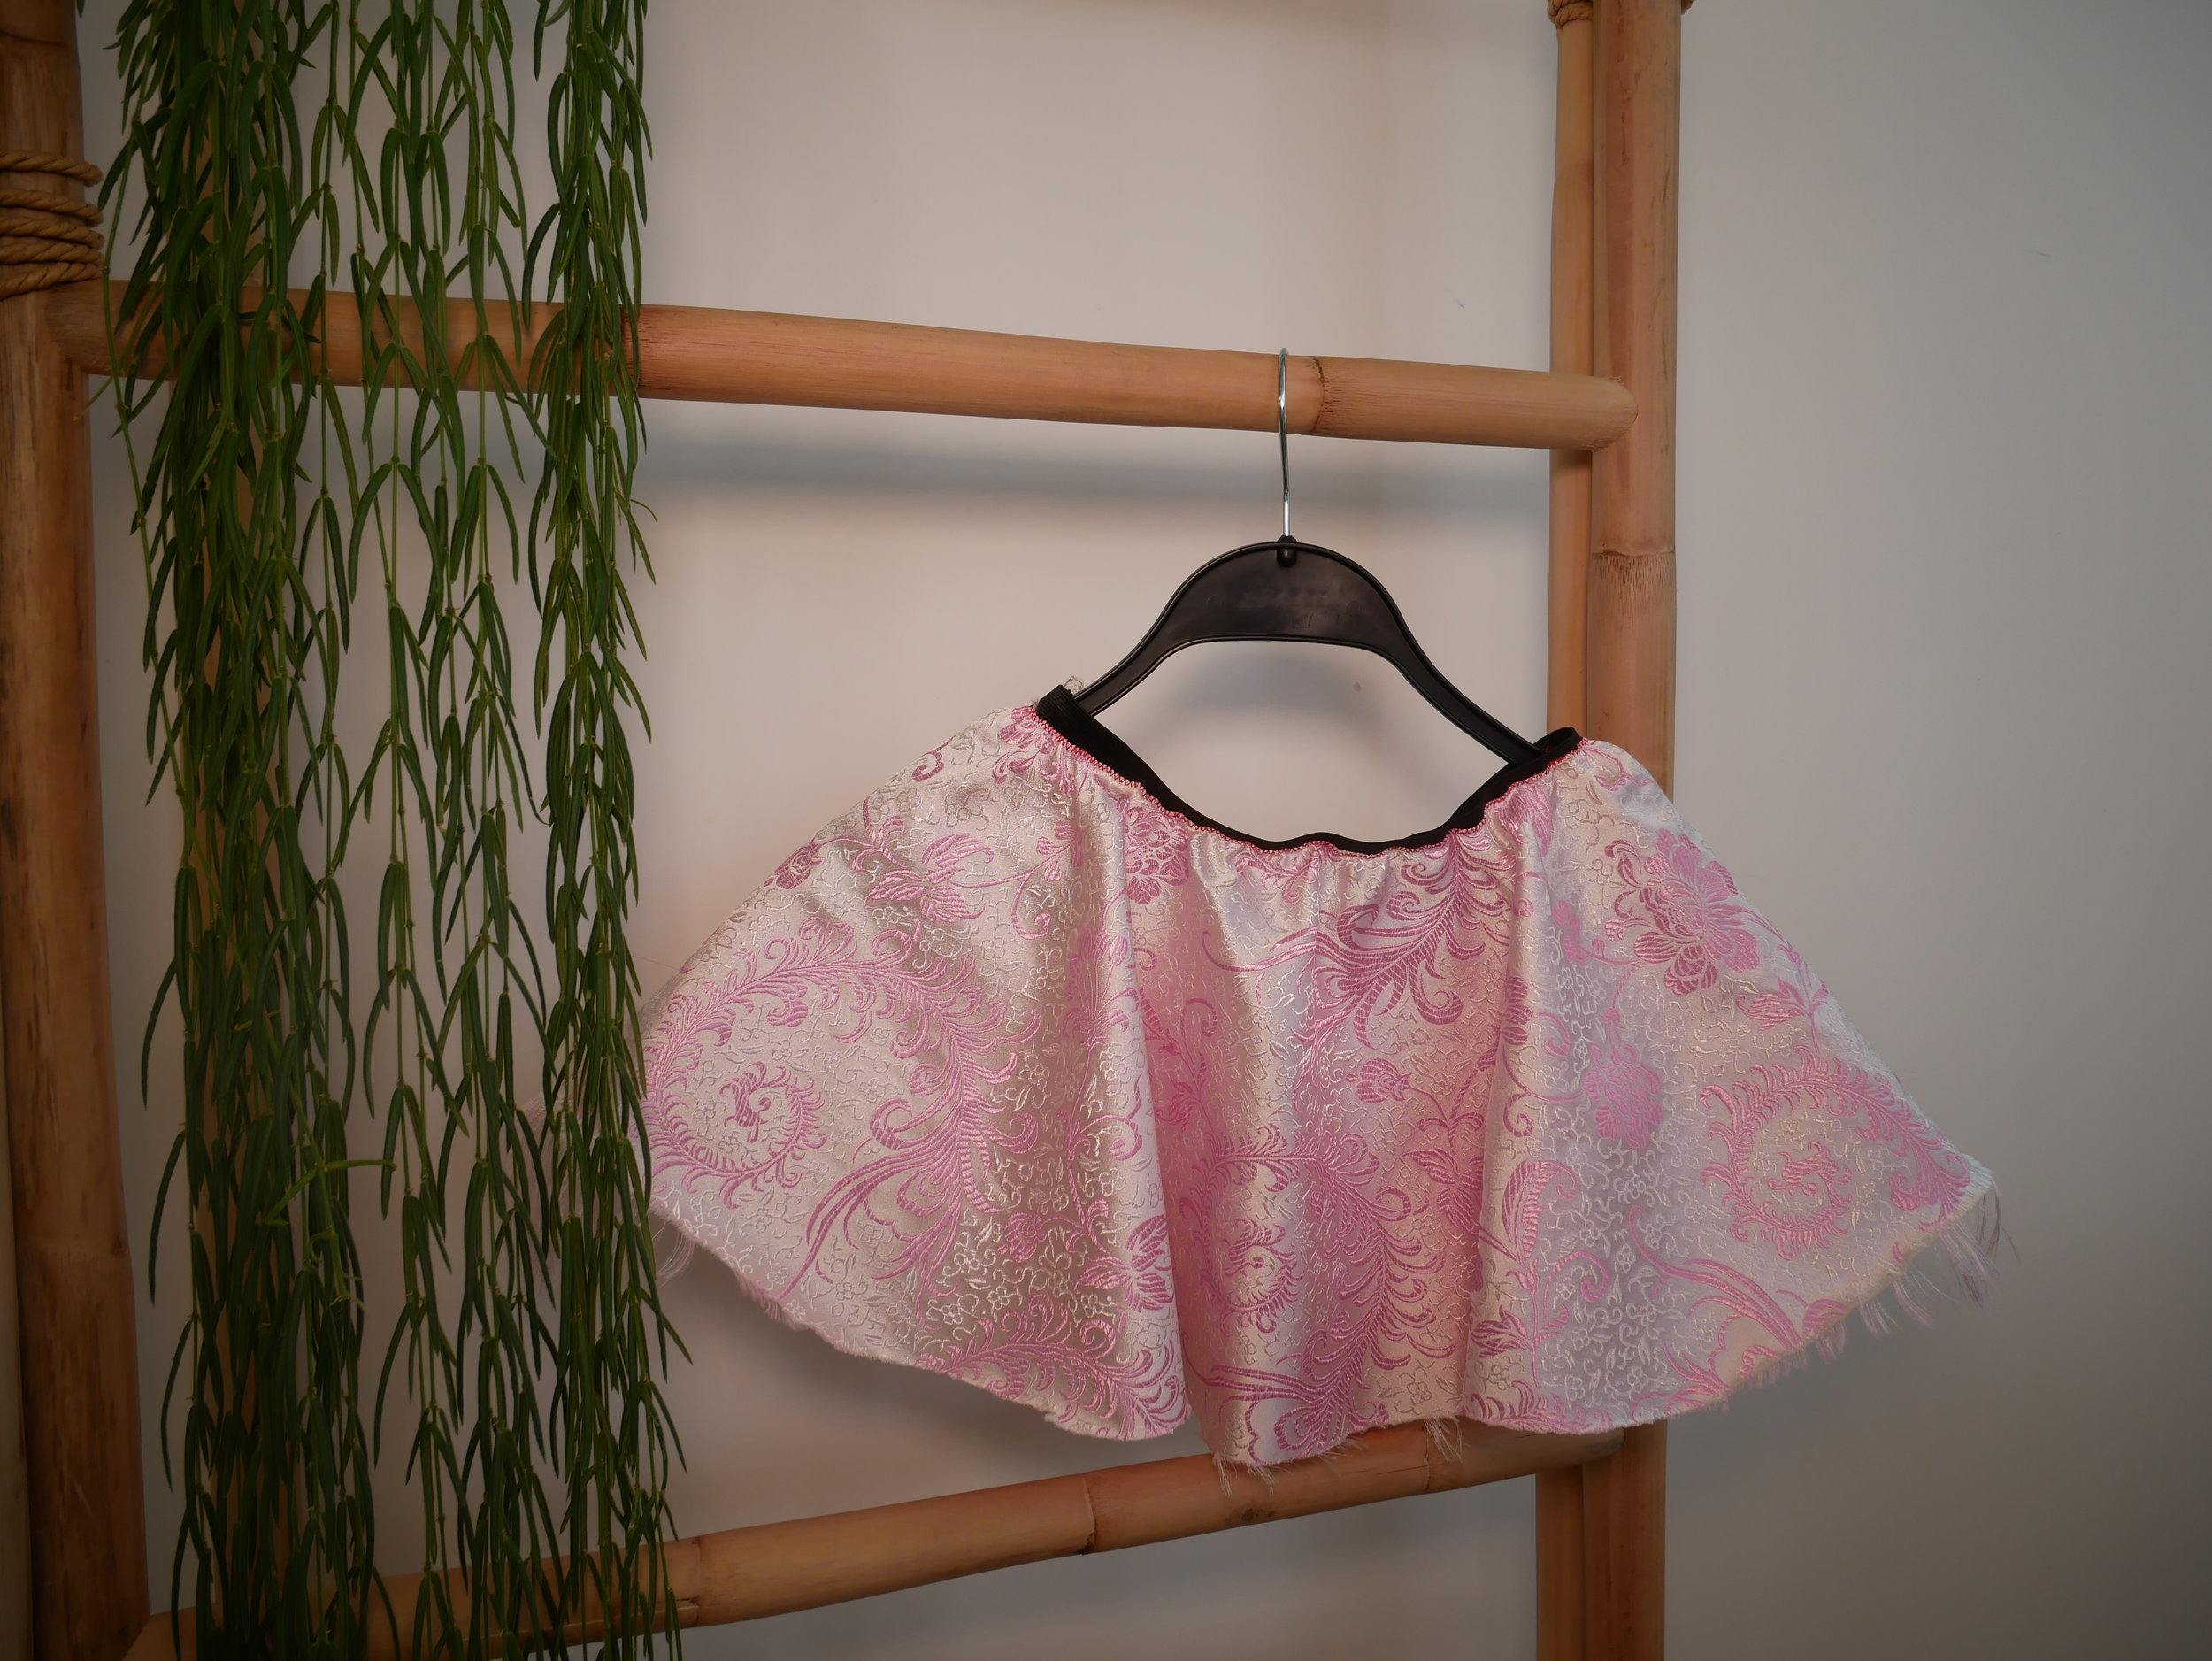 Pink Circle Mini-skirt  by Caitlin Lee  HK$7,000